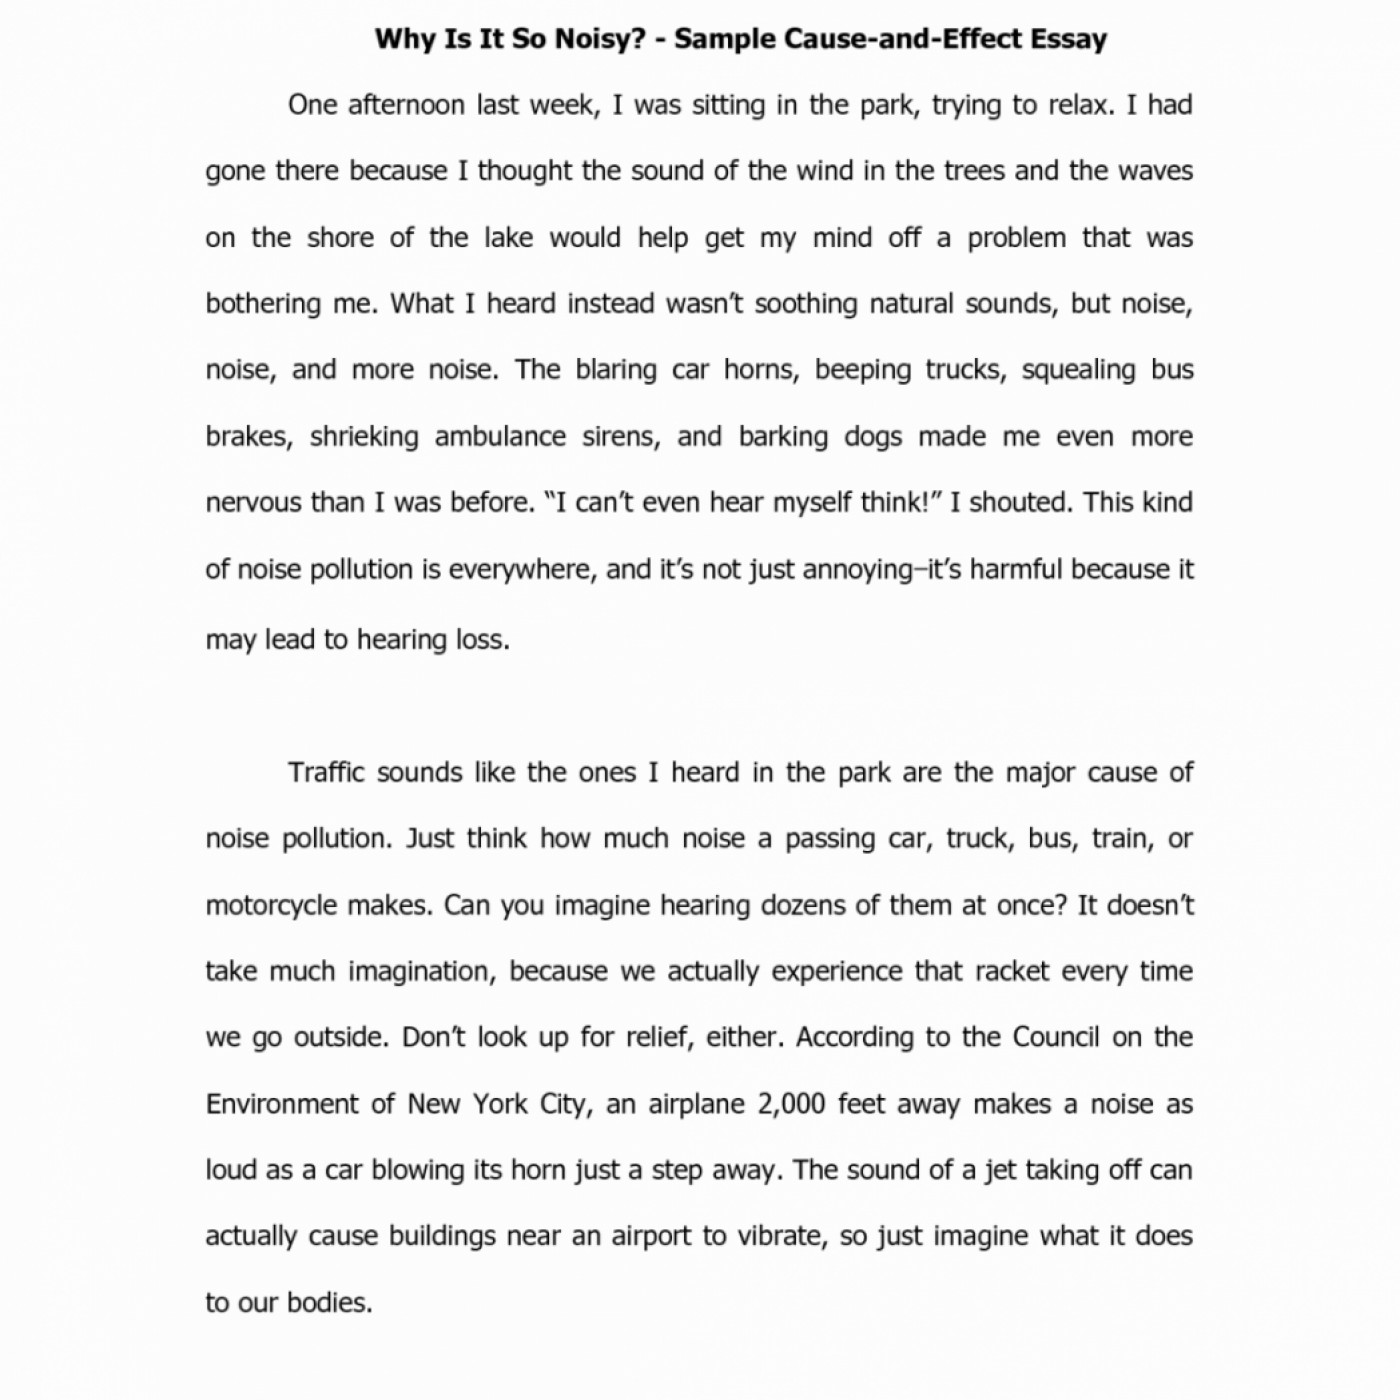 027 Cause And Effect Essays Format Best Of For Or Good Cover Bystander Domino Analysis Ielts Free 6th Grade College Pdf Middle School 1048x1048 Amazing Essay Examples On Stress 1400